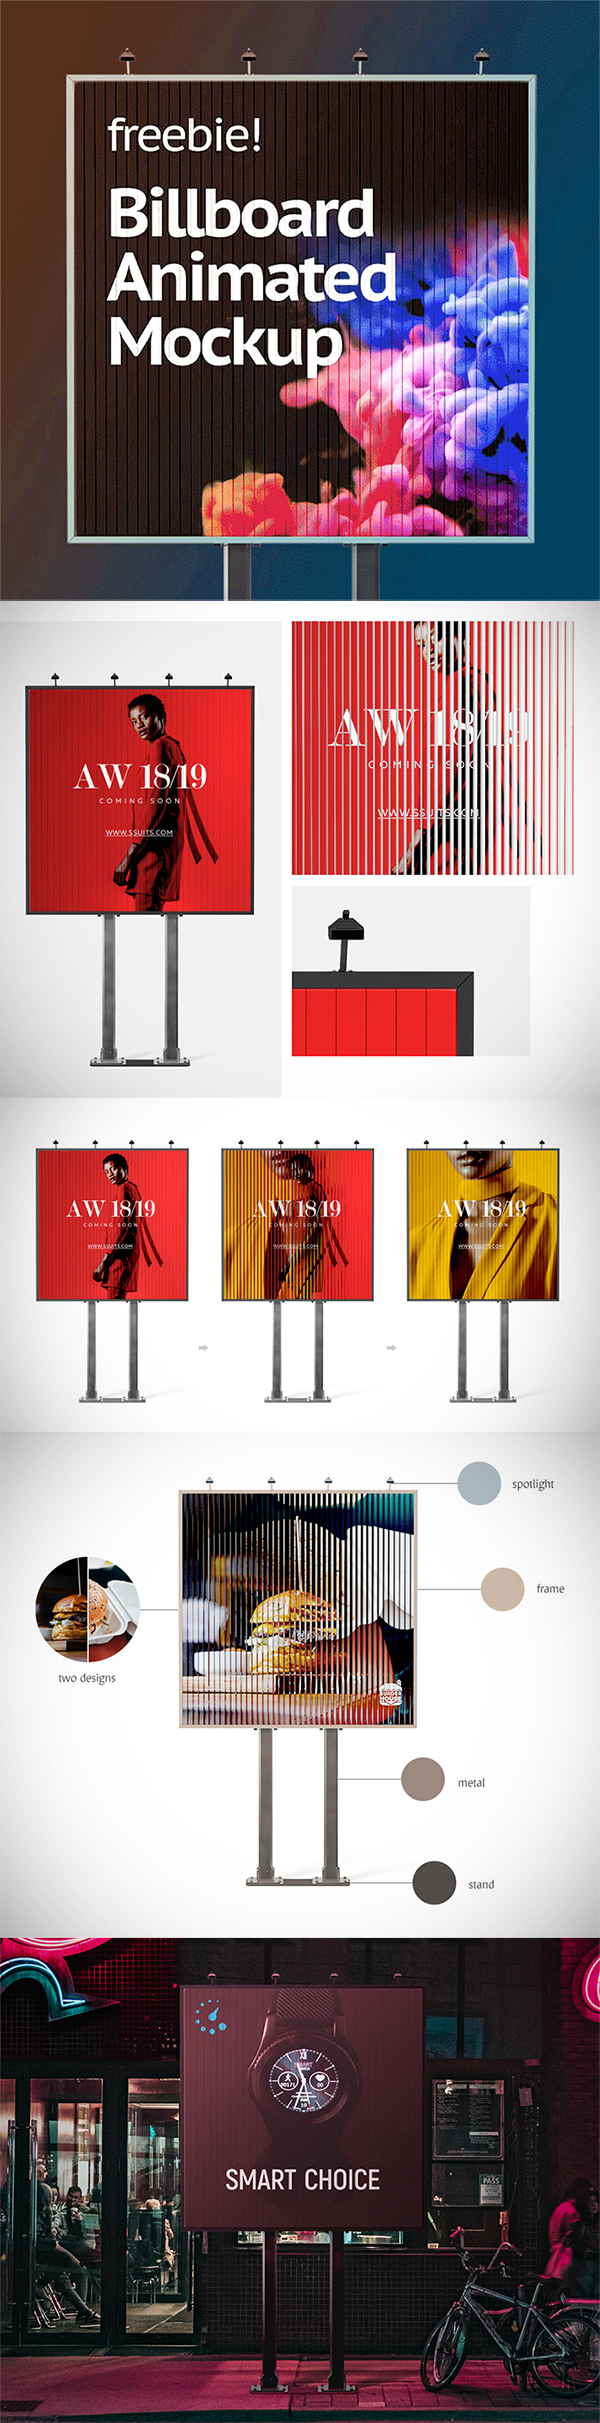 Awesome Outside Animated Billboard PSD Mockup Free Download